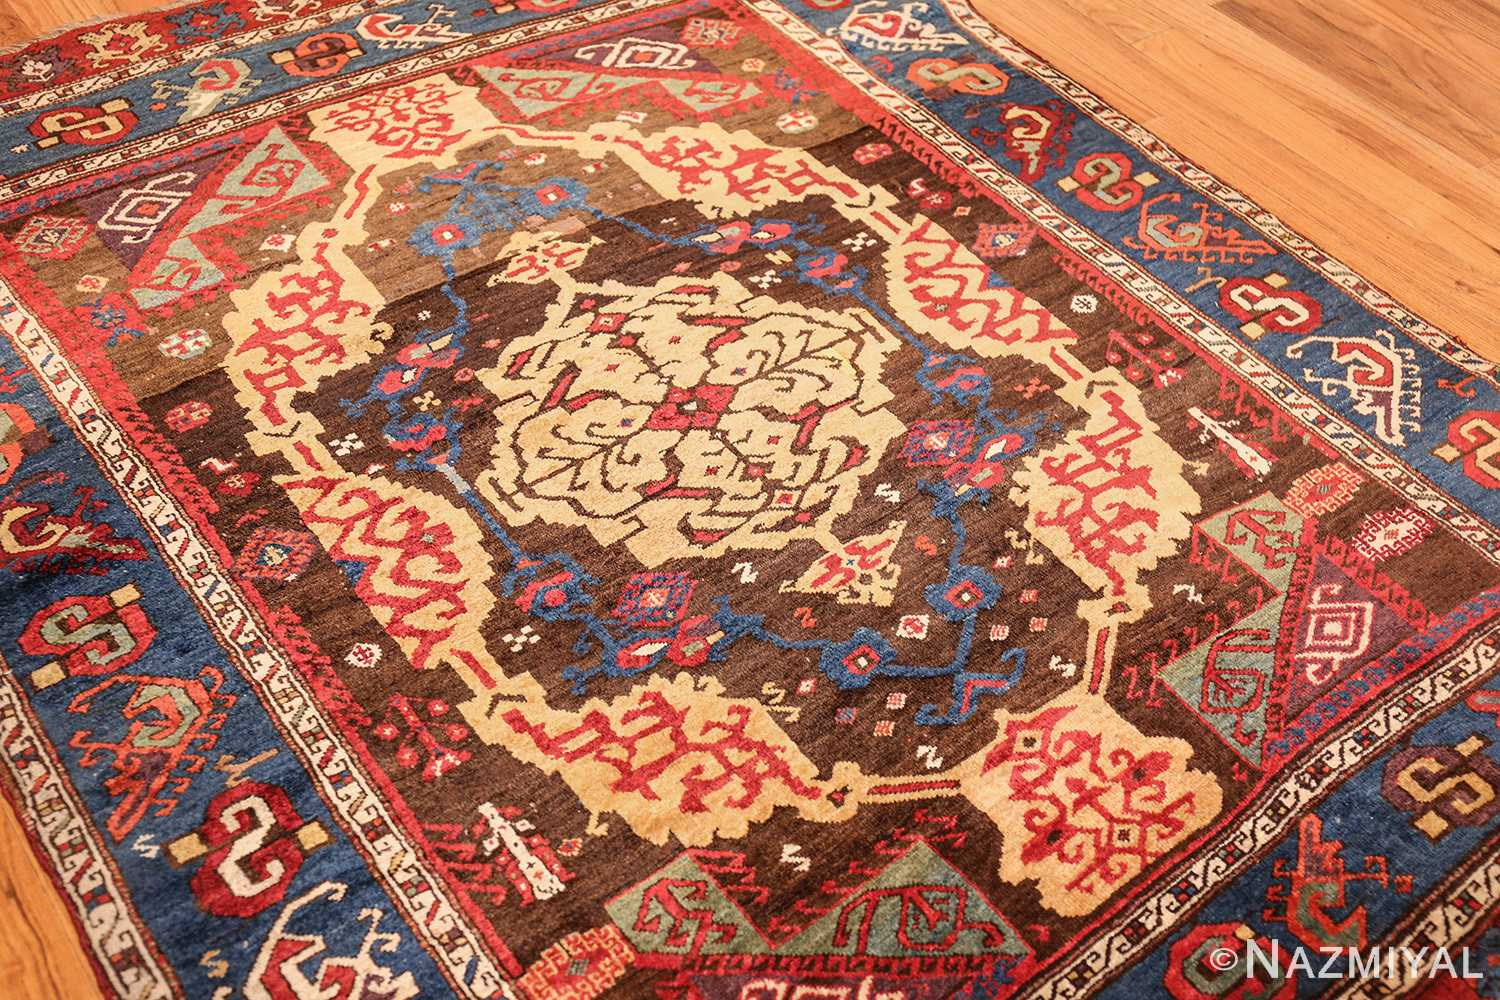 18th century turkish rug from james ballard 47373 side Nazmiyal